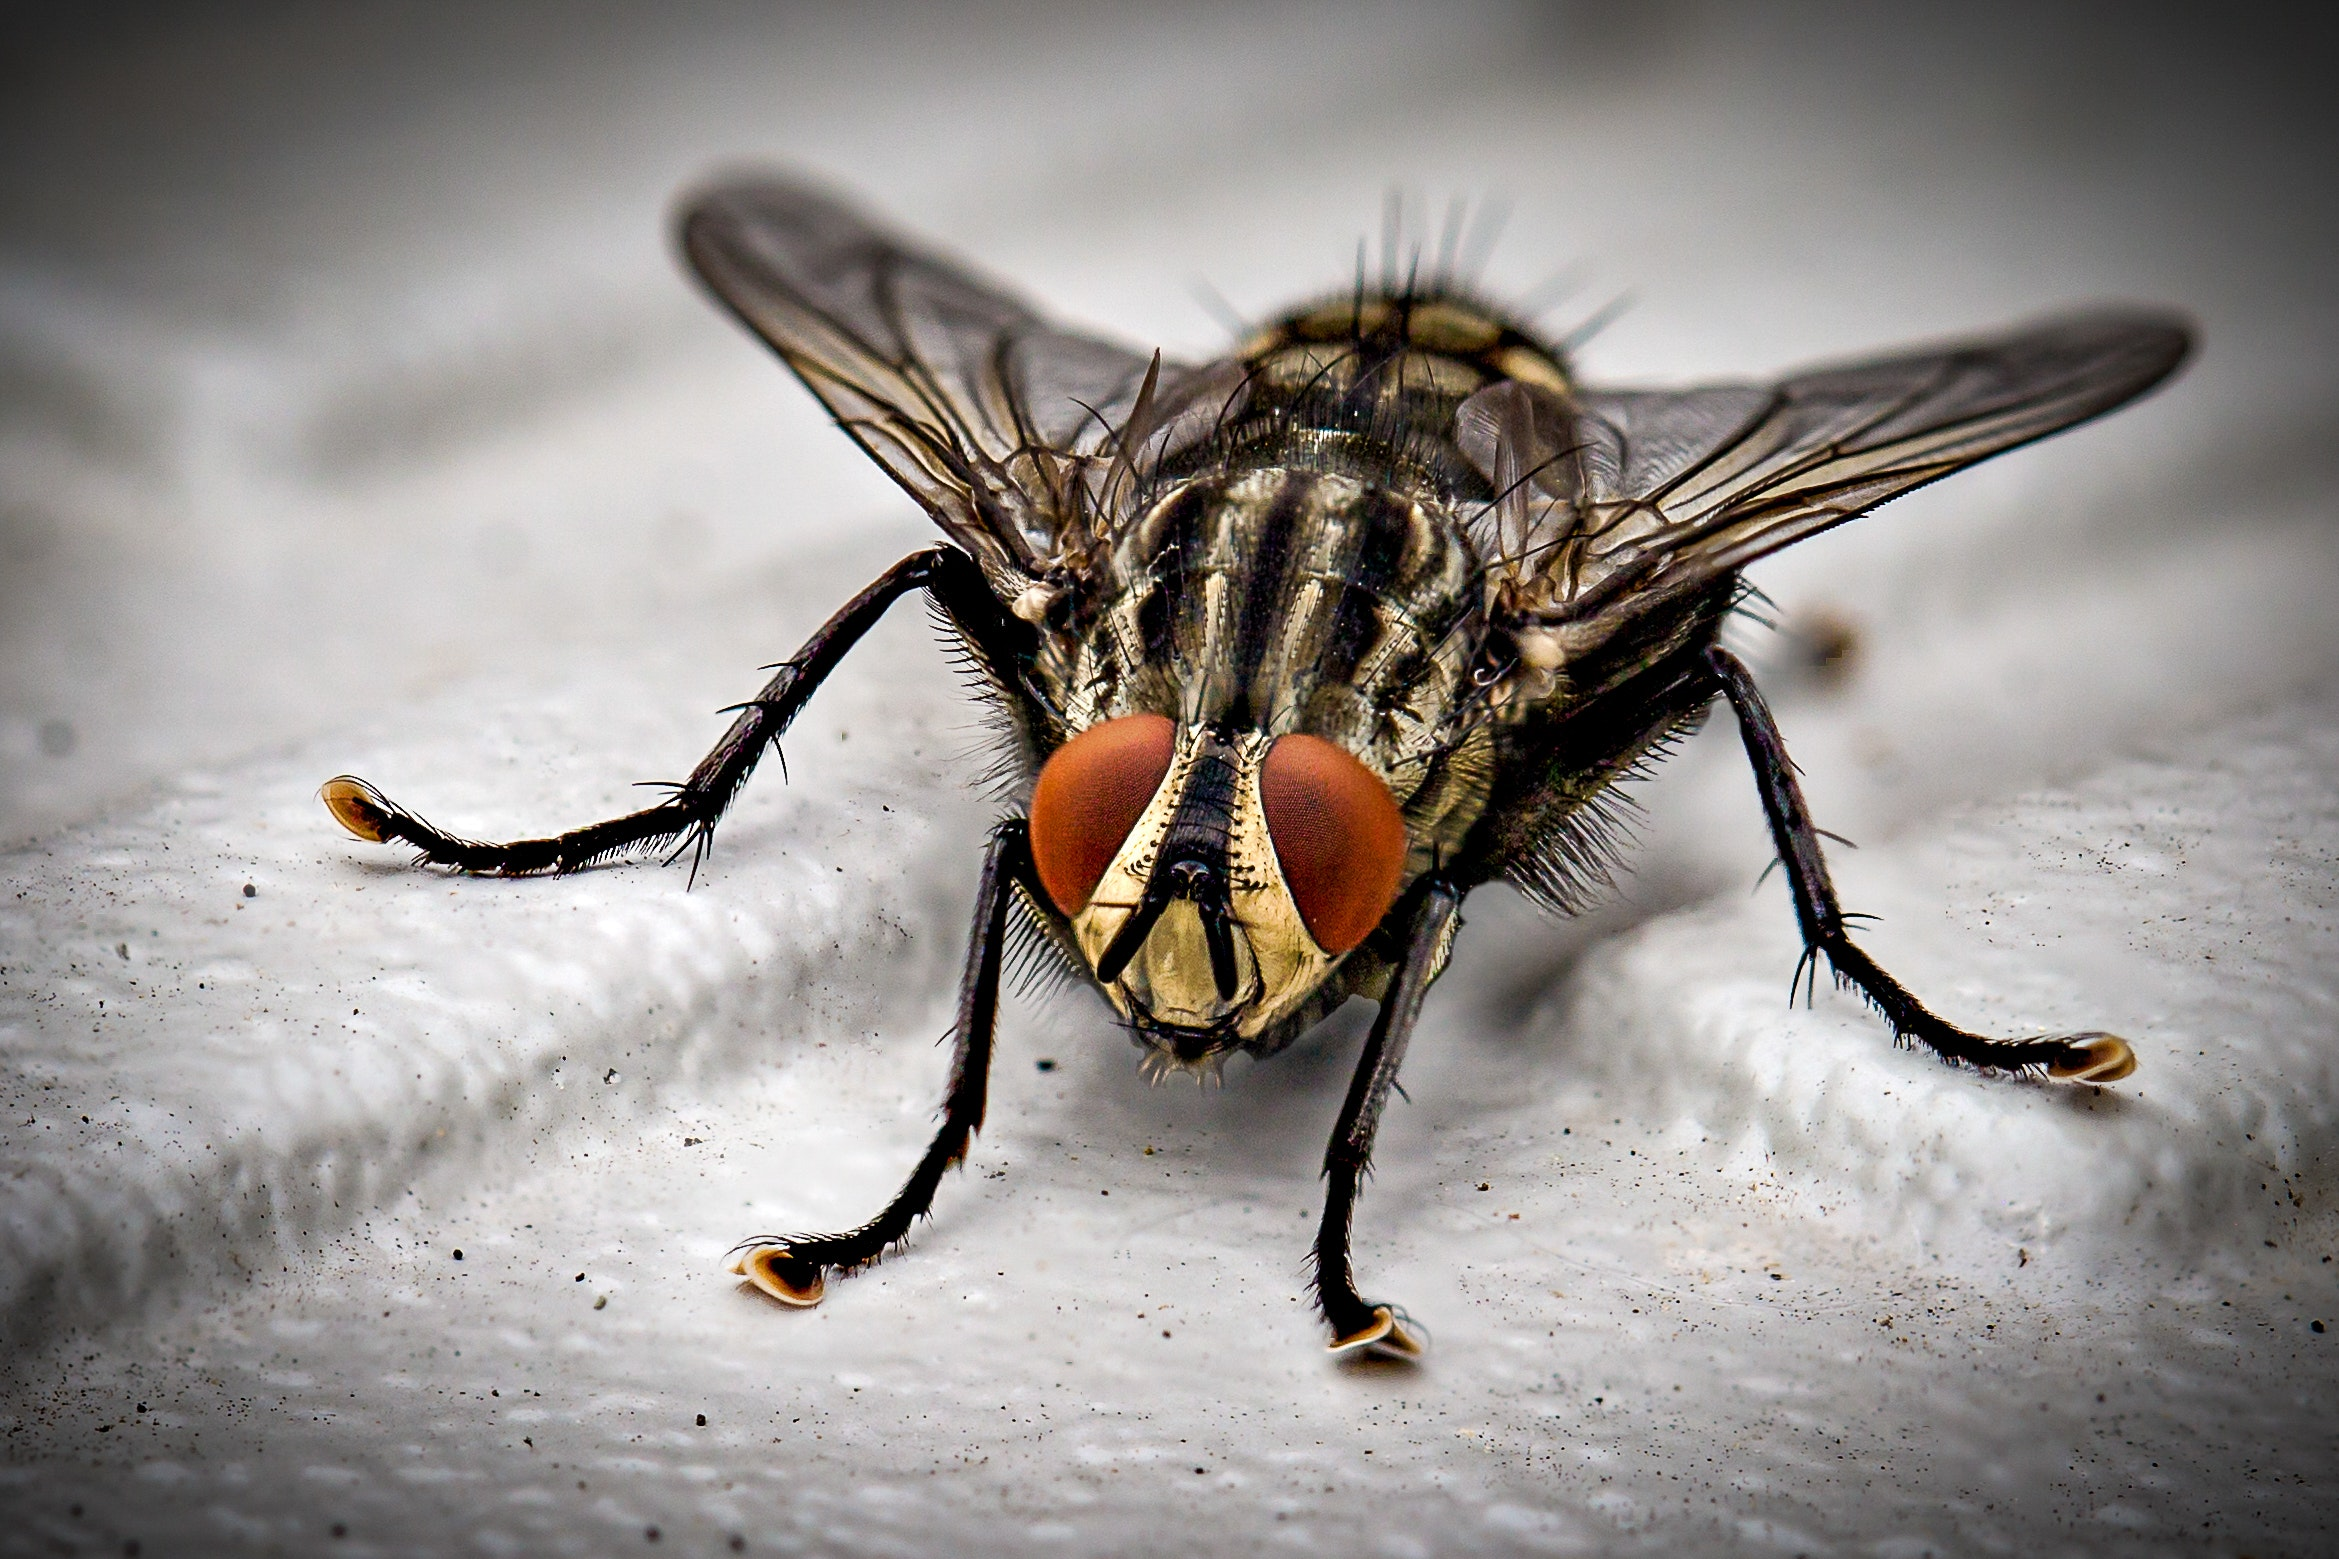 Closeup Photo of Black and Gray Housefly on White Surface